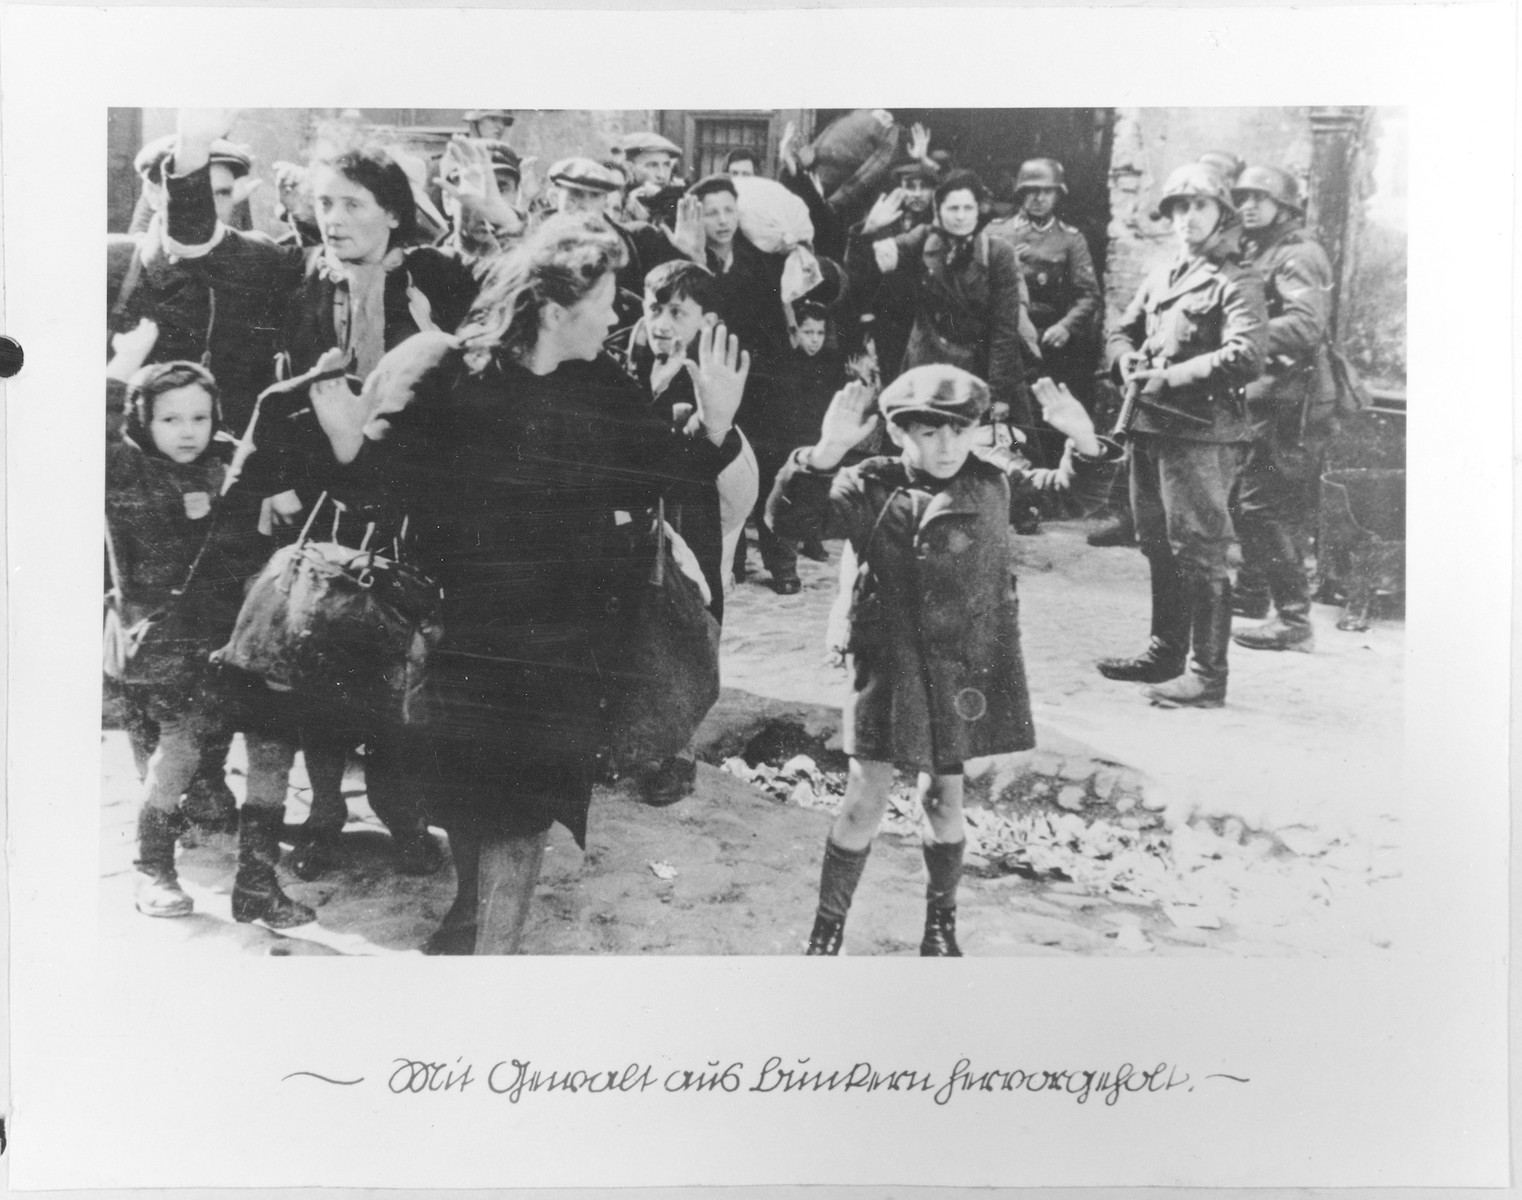 "Jews captured by SS and SD troops during the suppression of the Warsaw ghetto uprising are forced to leave their shelter and march to the Umschlagplatz for deportation.    The original German caption reads: ""Pulled from the bunkers by force.""  The SD trooper pictured second from the right, is SS-Rottenfuehrer Josef Bloesche, who was identified by authorities using this photograph.  Bloesche was tried for war crimes by an East German court in 1969, sentenced to death and executed in July of that year.    The little girl on the left has been identified as Hanka Lamet, who is standing next to her mother, Matylda Lamet Goldfinger (the woman second from the left).  The boy carrying the sack has been identified as Leo Kartuzinsky and the woman in the front has been identified as Chana Zeilinwarger.  Numerous people have identified the boy in the foreground as either Arthur Domb Semiontek, Issrael Rondel, Tsvi Nussbaum or Levi Zeilinwarger, but none of these identifications can be conclusively corroborated"